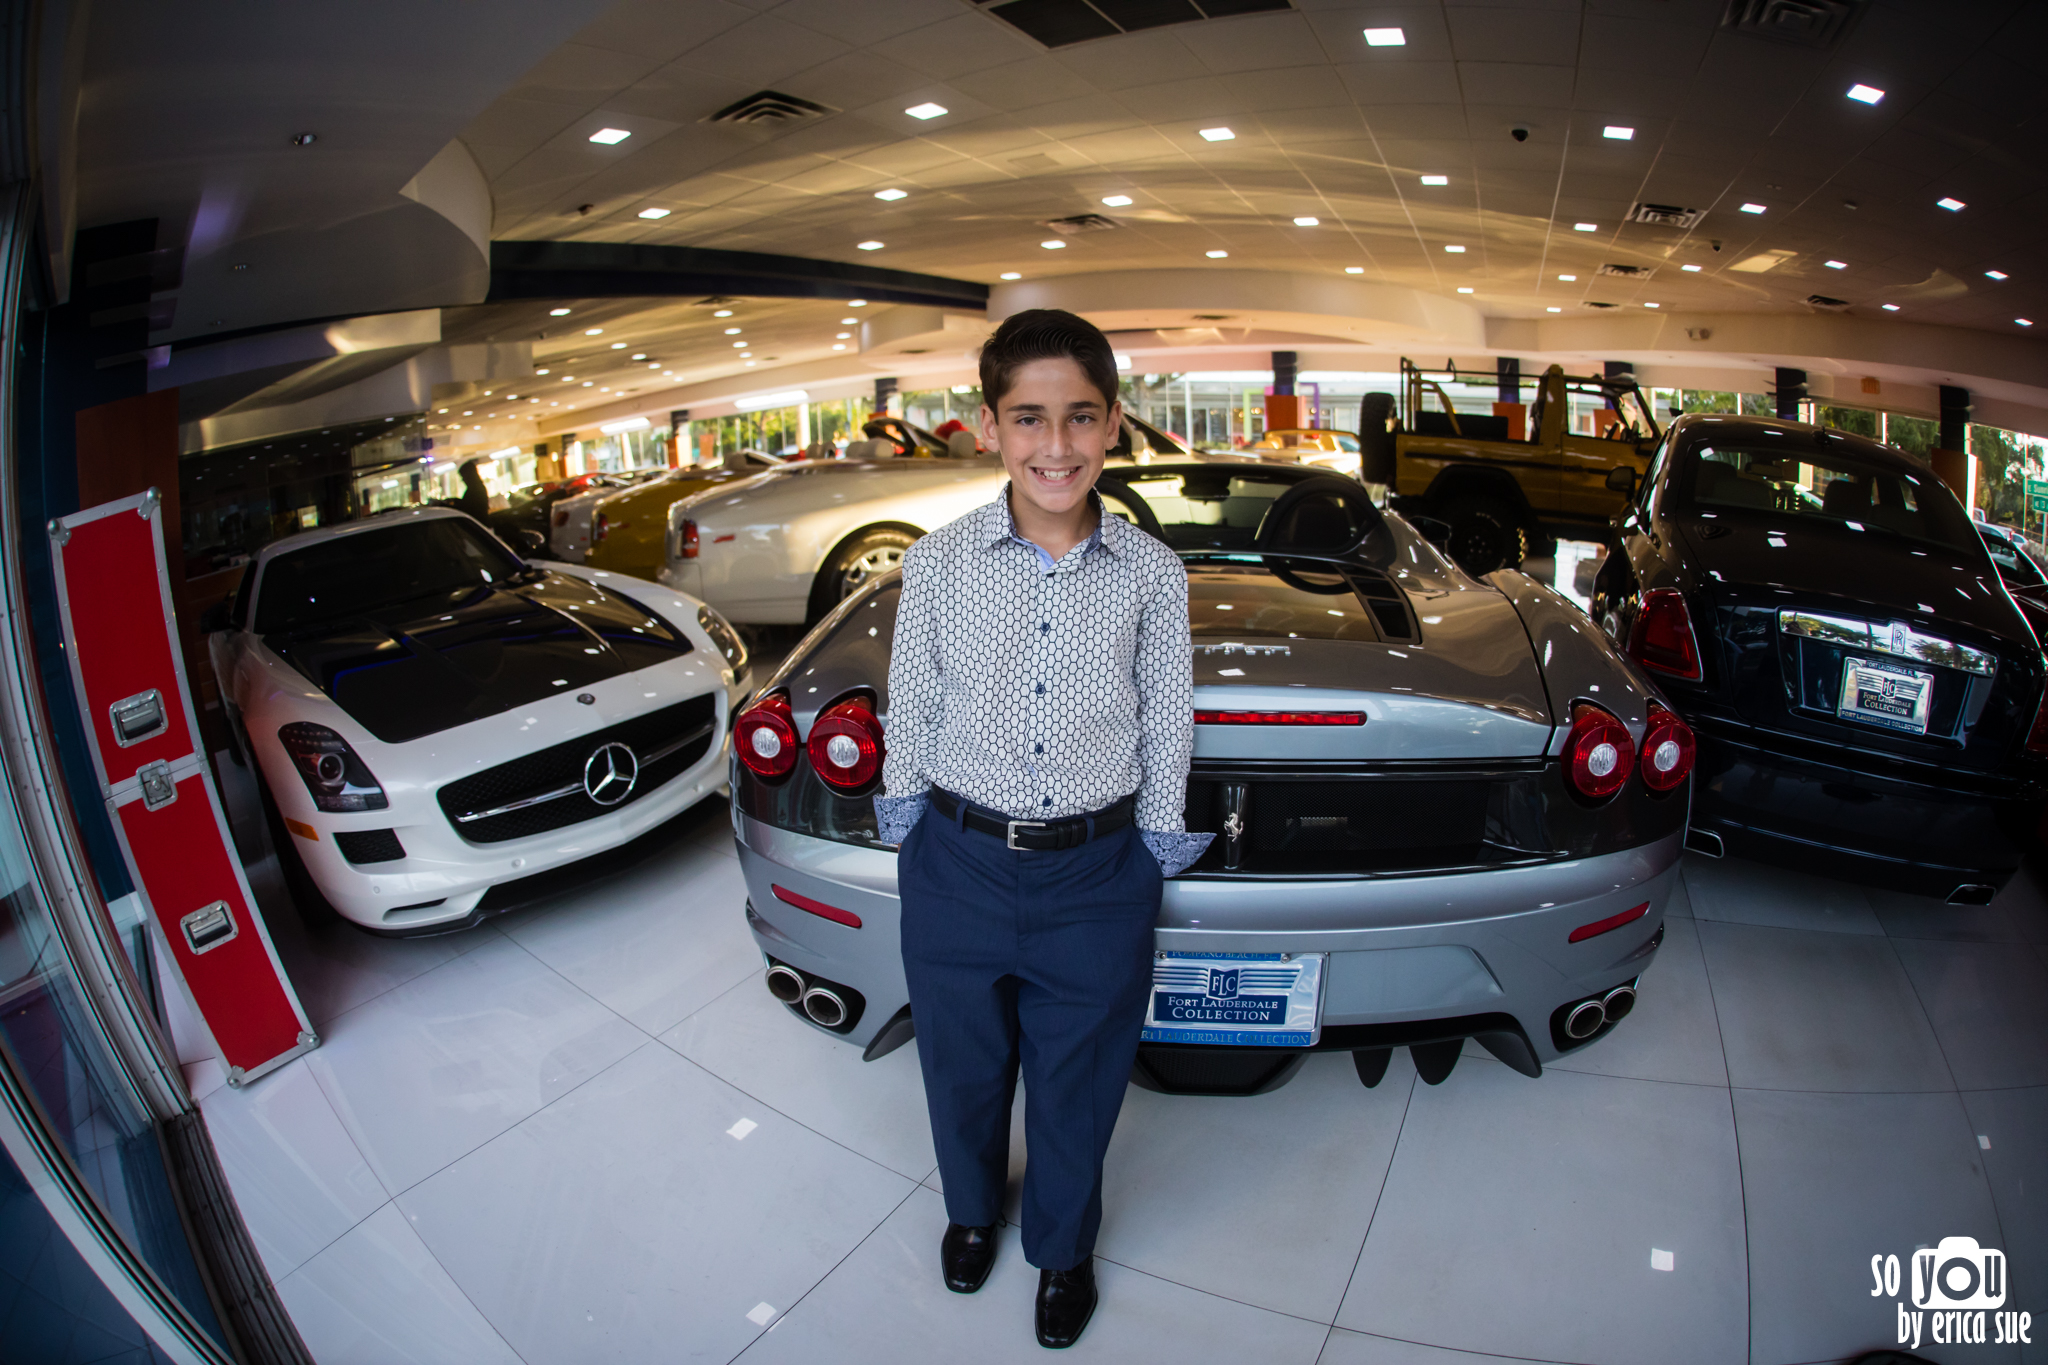 so-you-by-erica-sue-mitzvah-photographer-collection-luxury-car-ft-lauderdale-5105.jpg